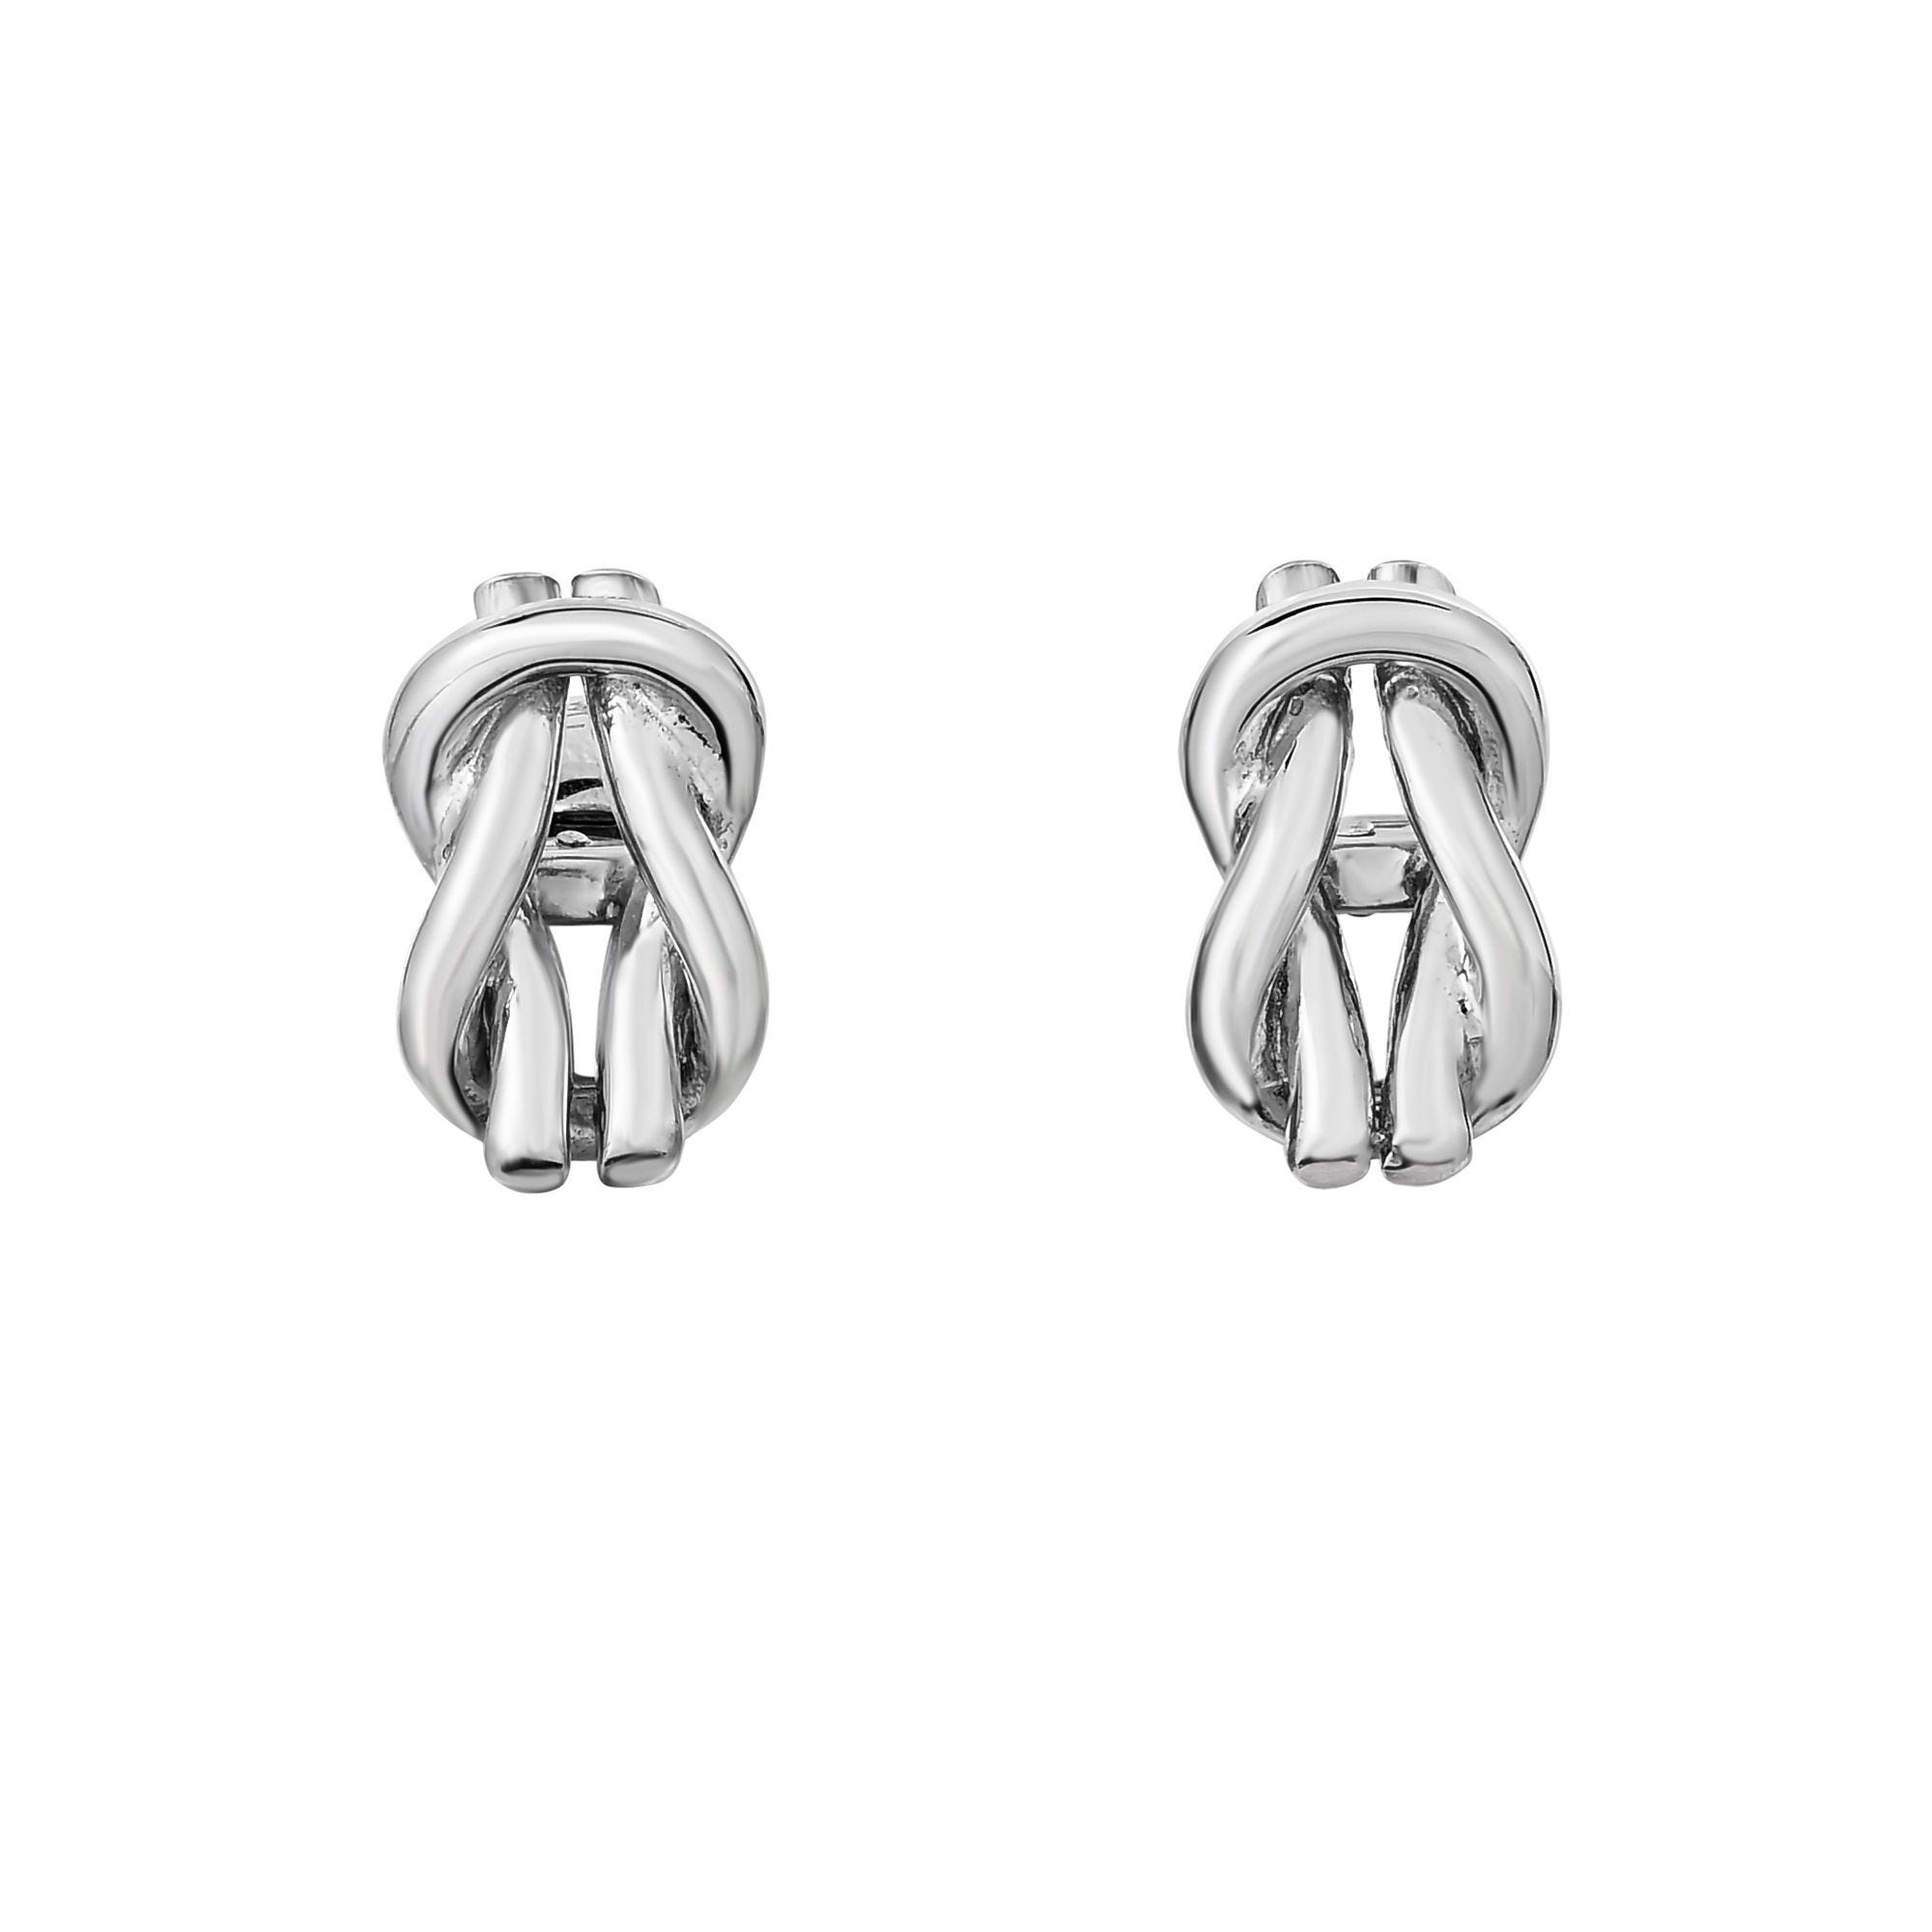 Looped Knot Cufflinks 20x12mm in Sterling Silver